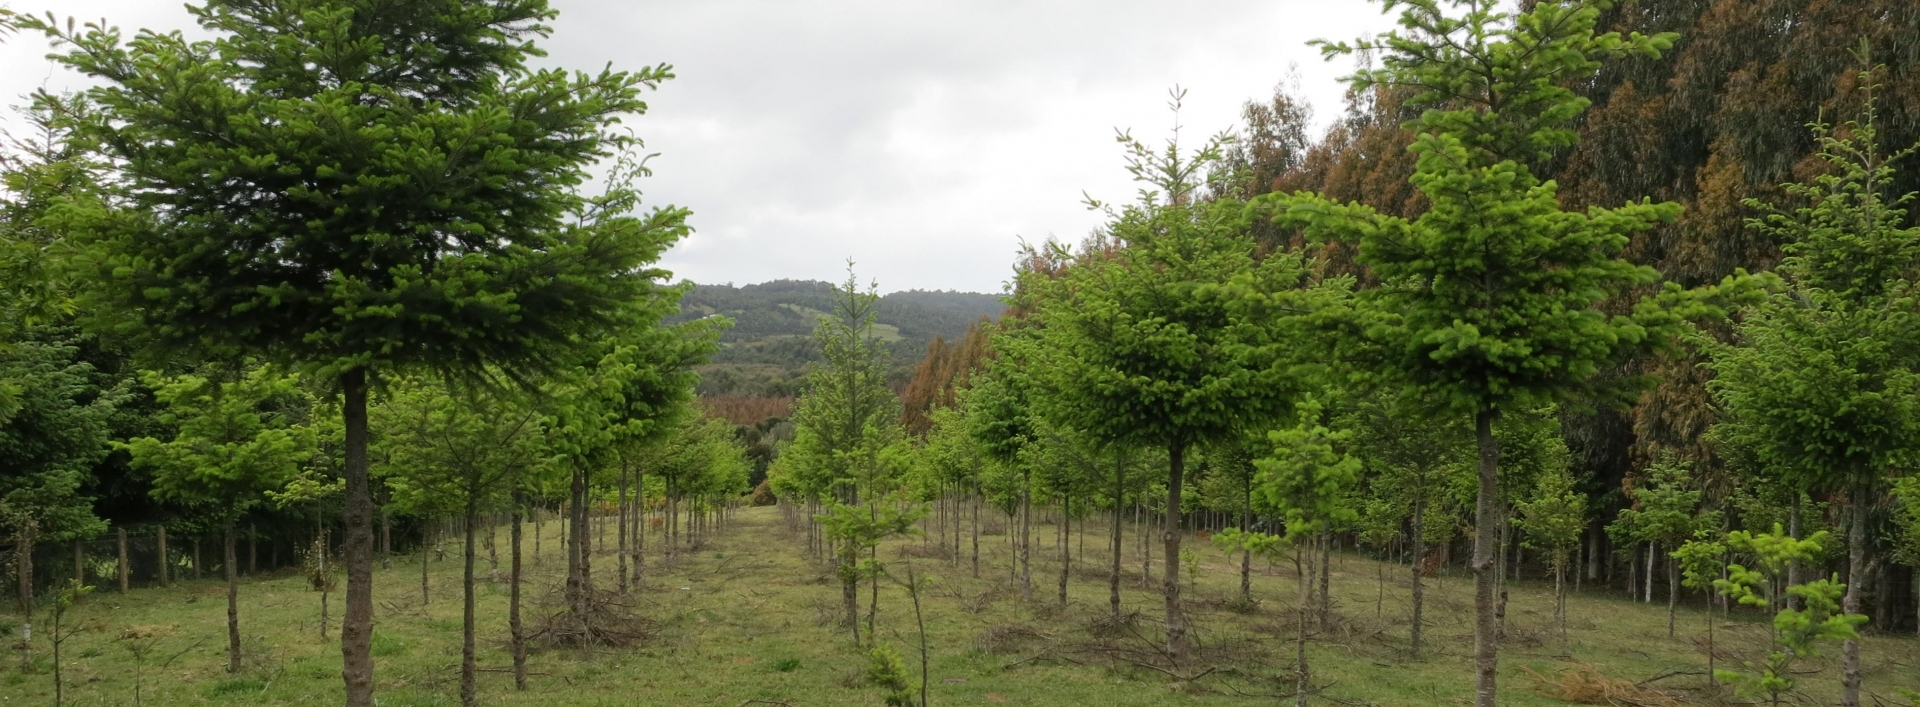 Lines of trees growing in grassy zone